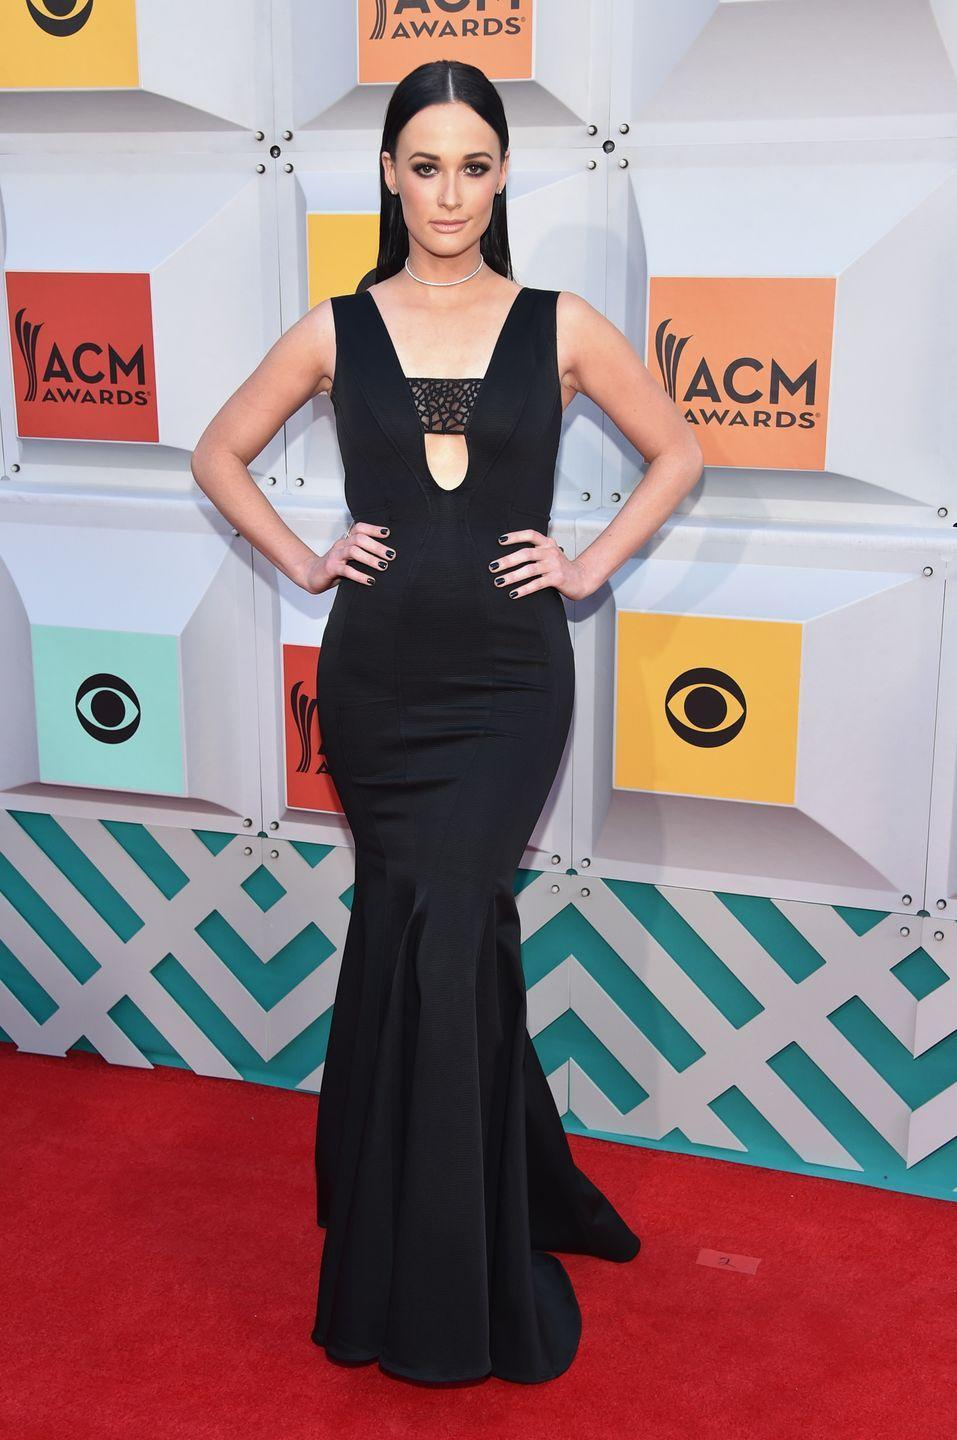 The Most Daring Gowns Ever Worn To The ACM Awards | Gowns